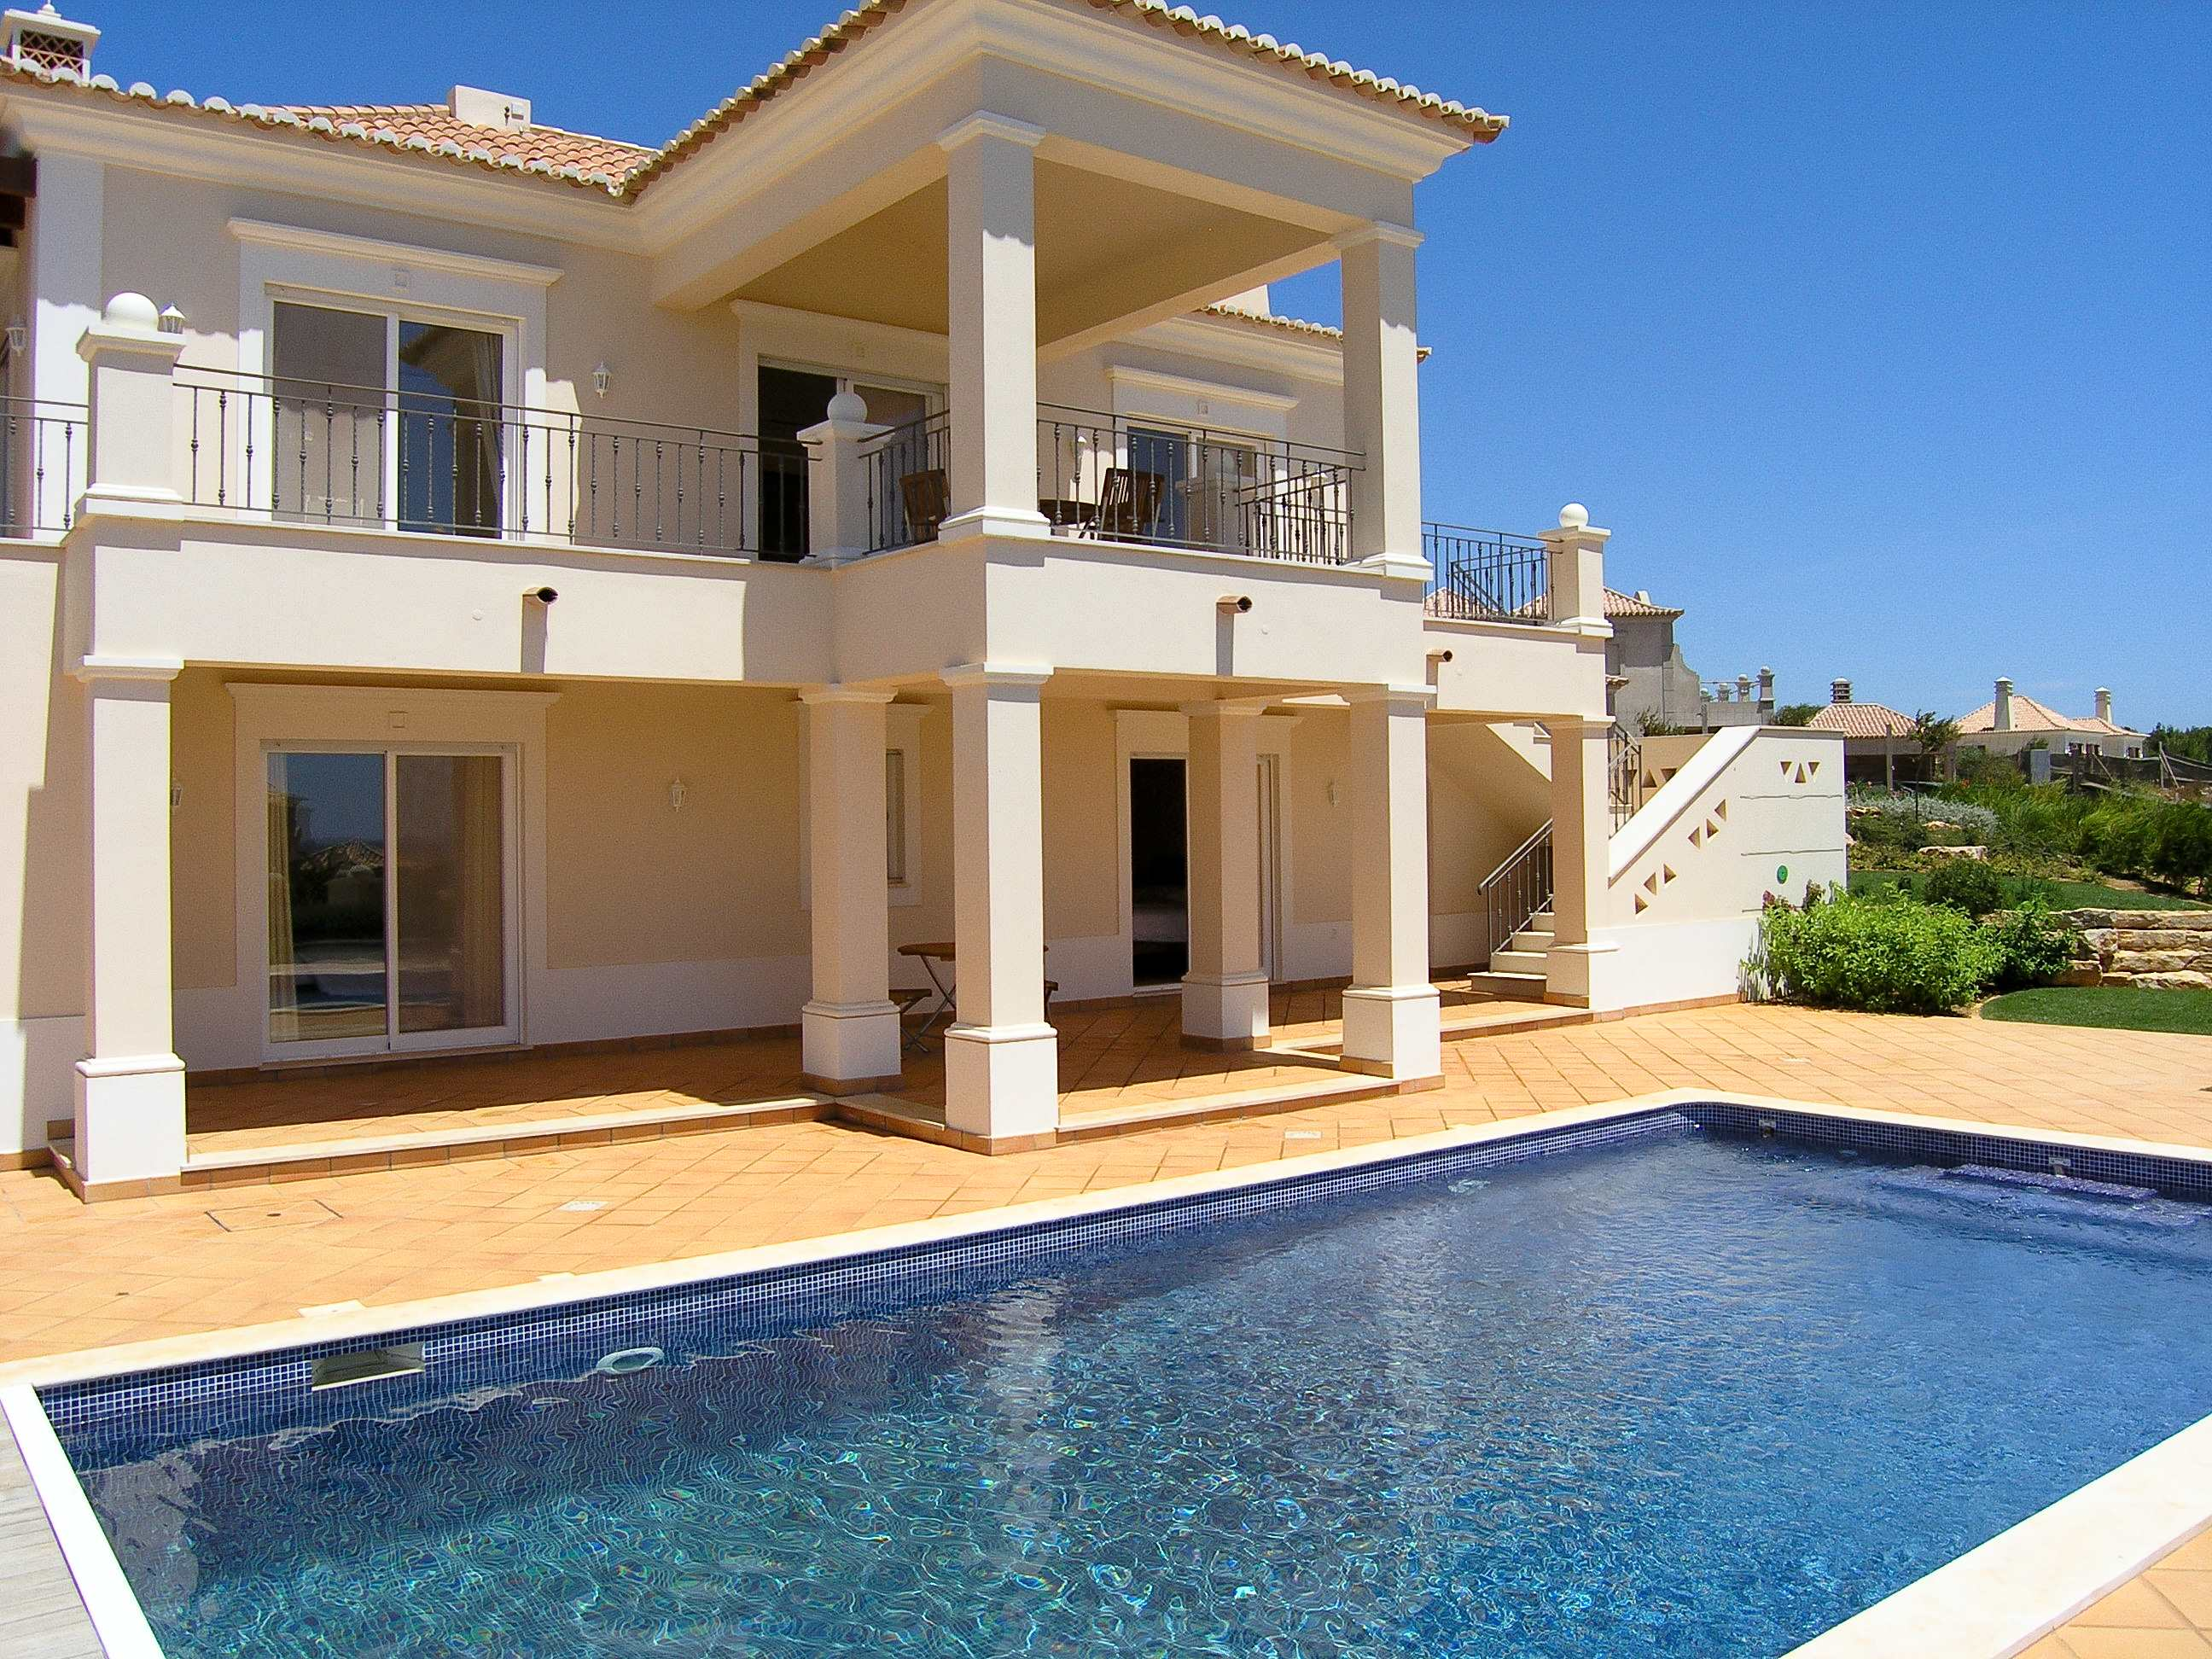 Martinhal Luxury Villa No.27, Four Bedroom Villa, 4 bedroom villa in Martinhal Sagres, Algarve Photo #1